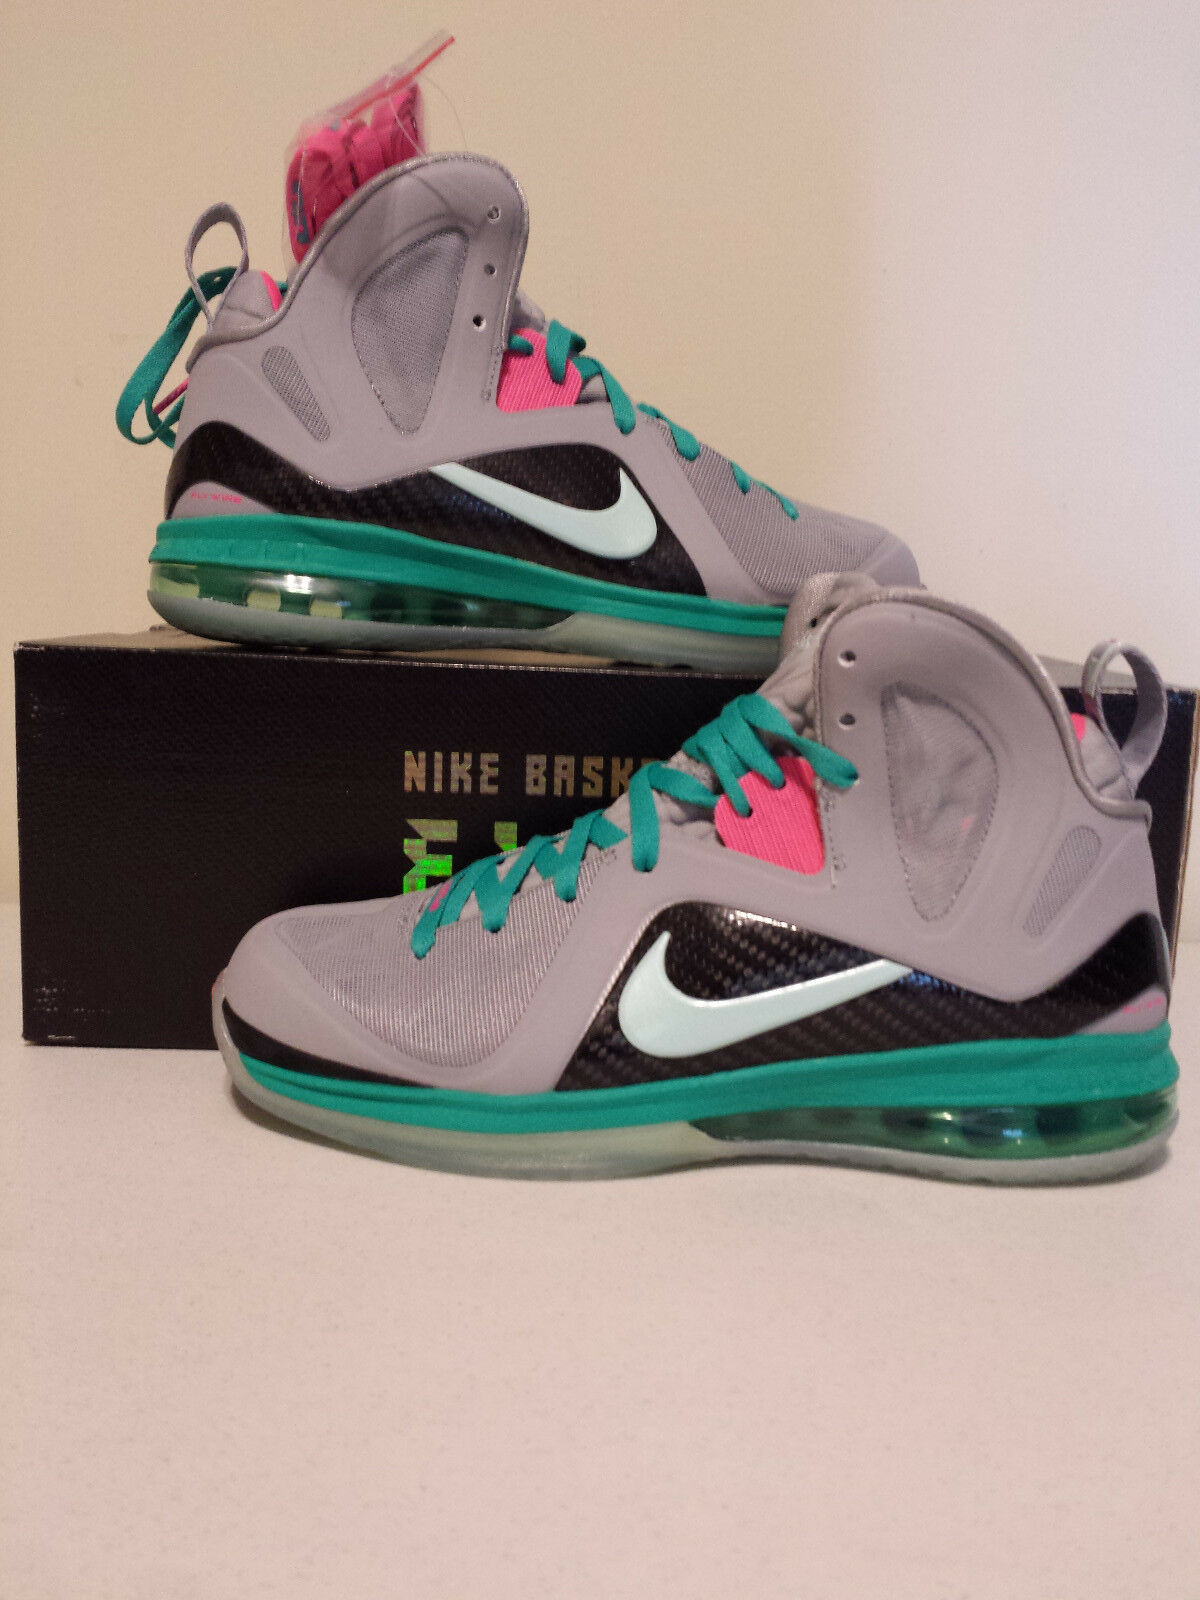 NIke Air Lebron 9 P.S. Elite South Beach SZ 8 516958-001 2012 Release